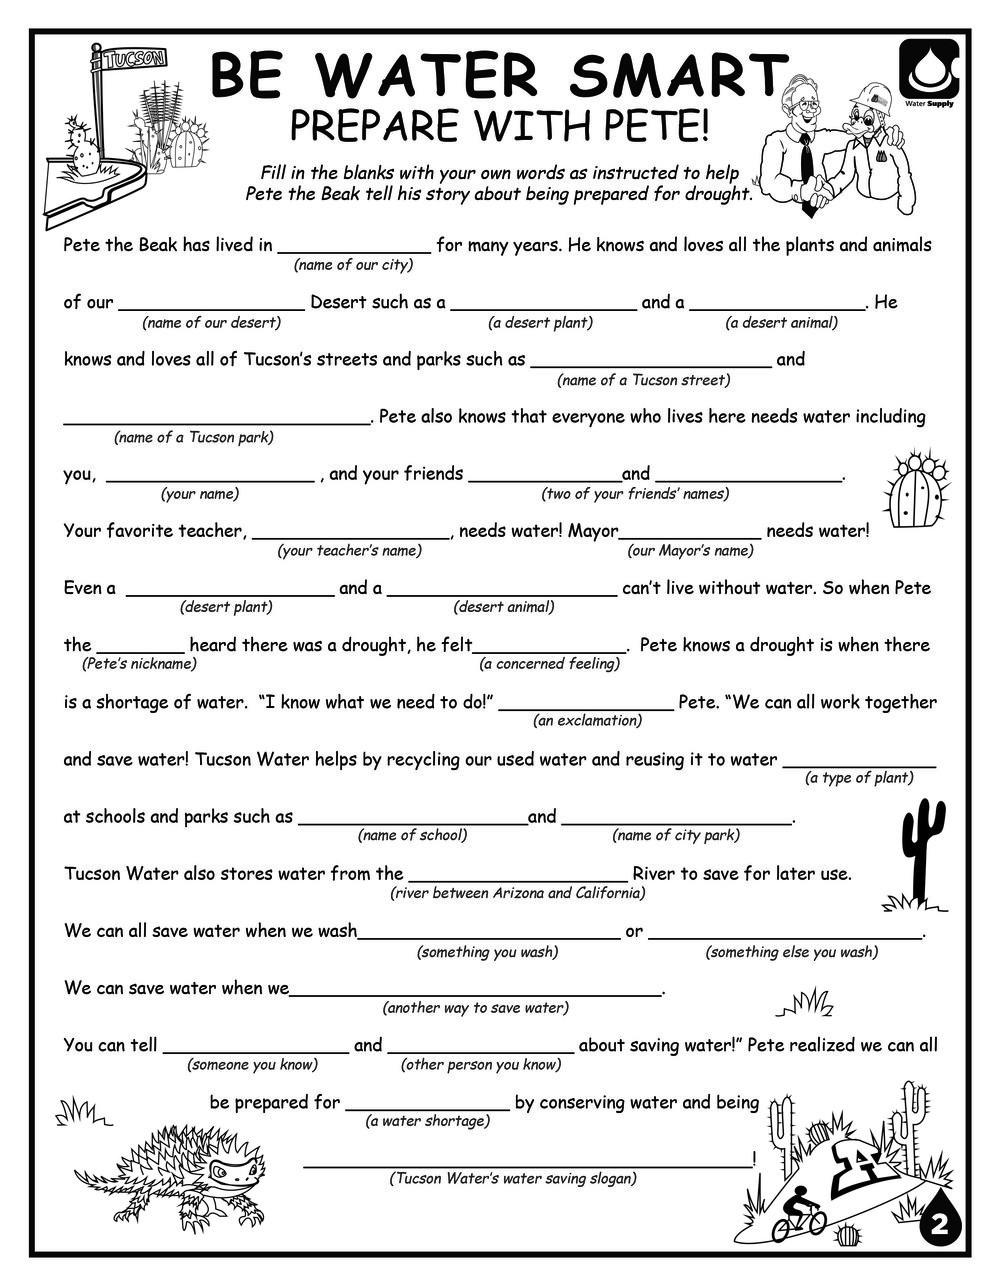 Water Quality Worksheet Middle School Print — Environmental Education Exchange